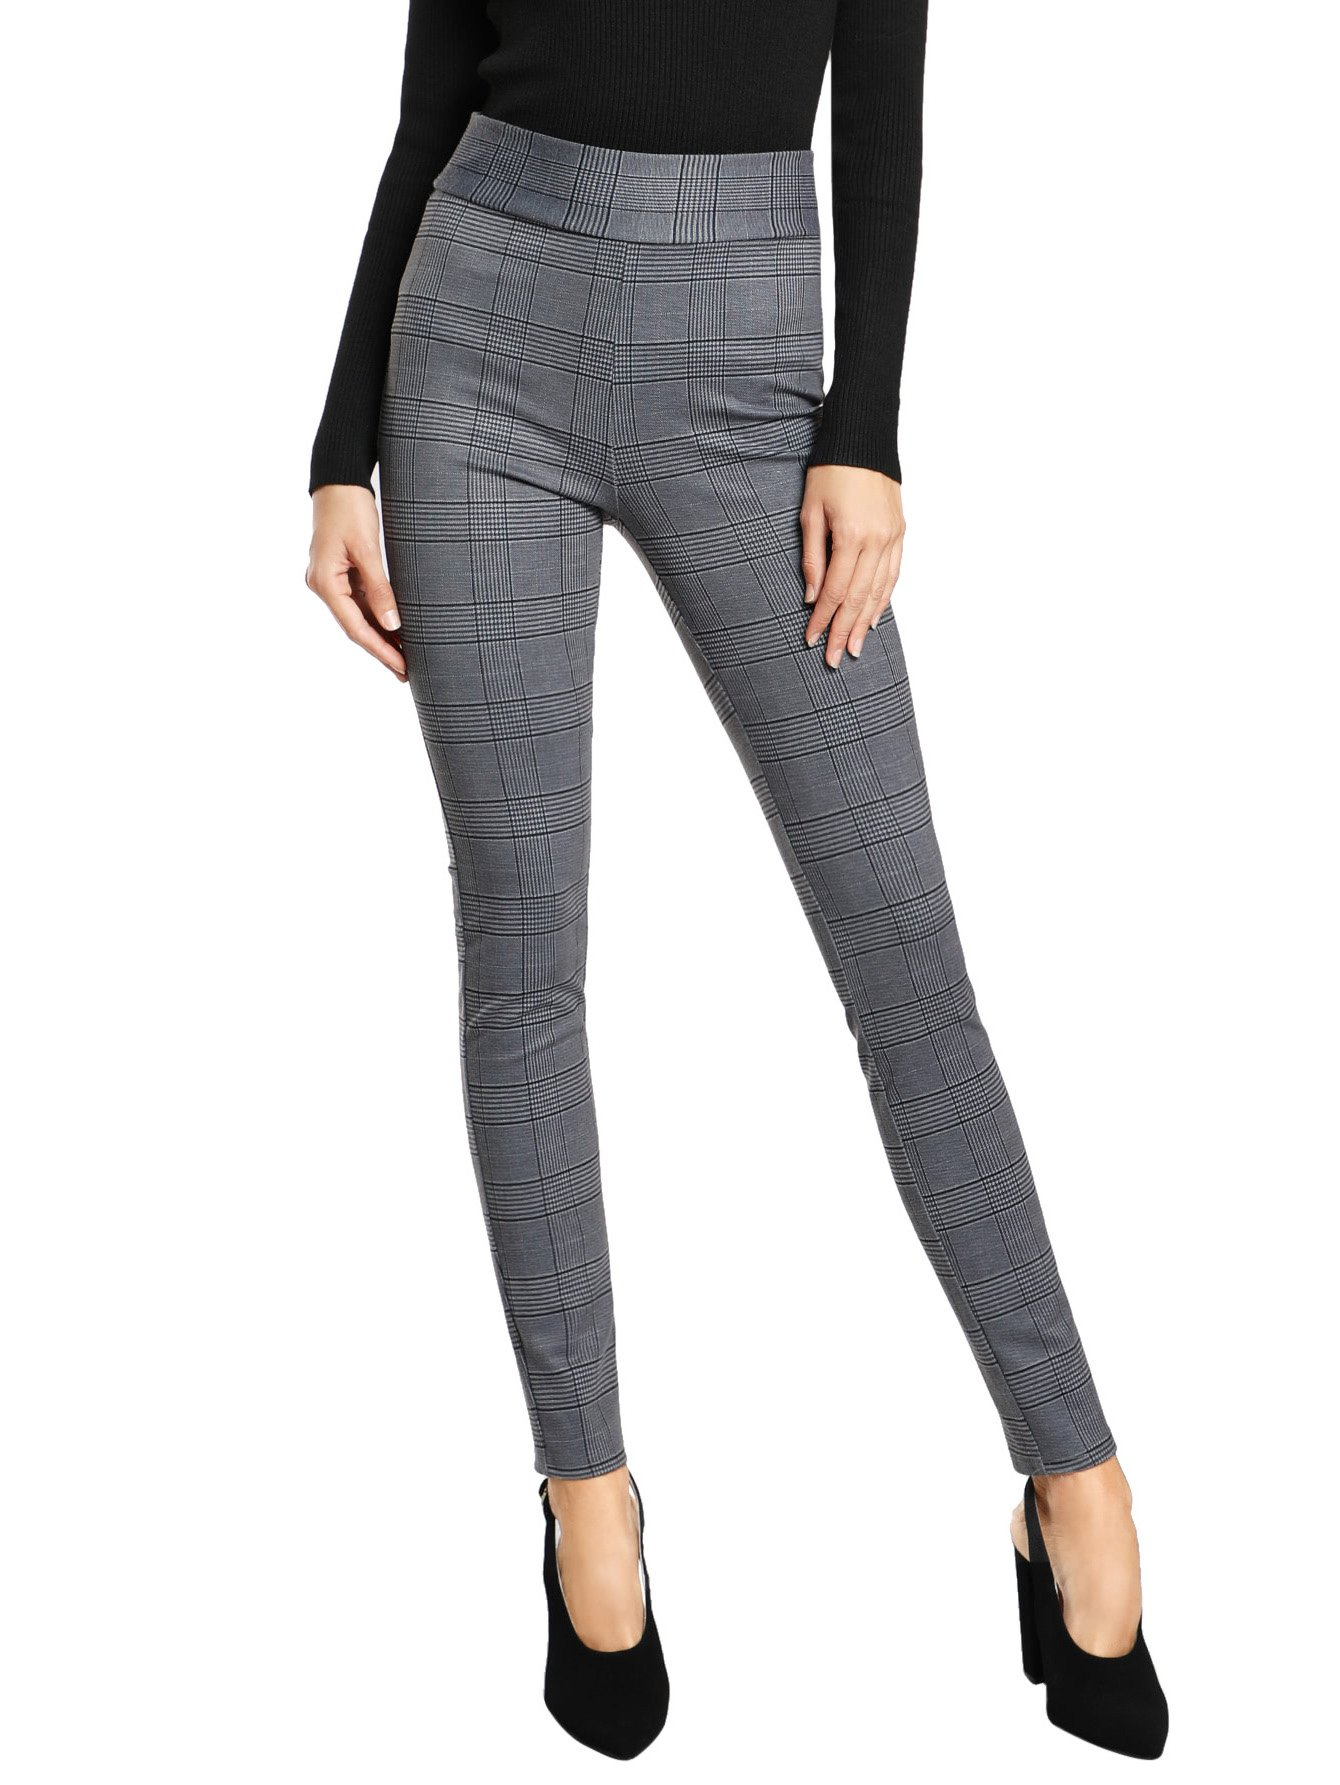 SweatyRocks Women's Casual High Waisted Ankle Plaid Pants Skinny Leggings, Grey #1, L